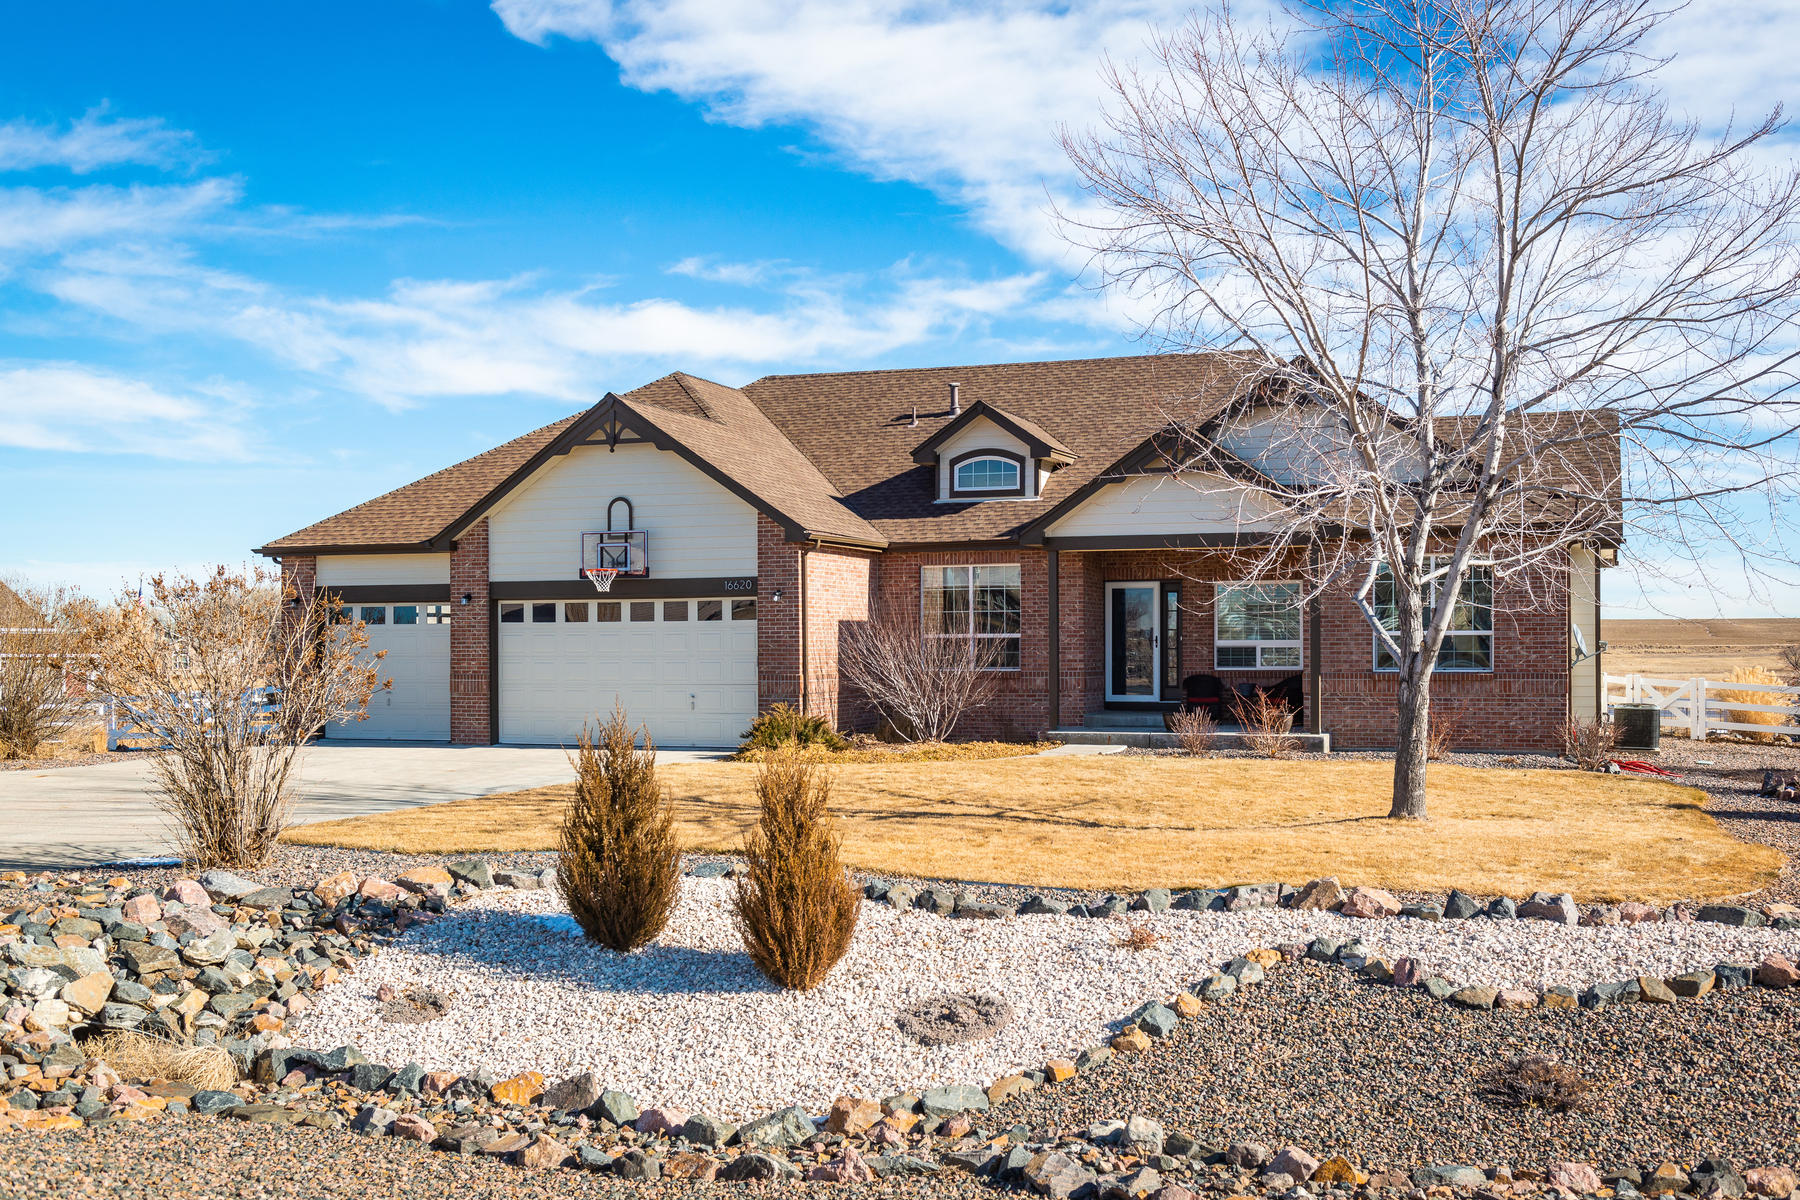 Single Family Home for Active at 100's of acres of farm land surrounds this perfectly updated home! 16620 Umpire St Hudson, Colorado 80642 United States